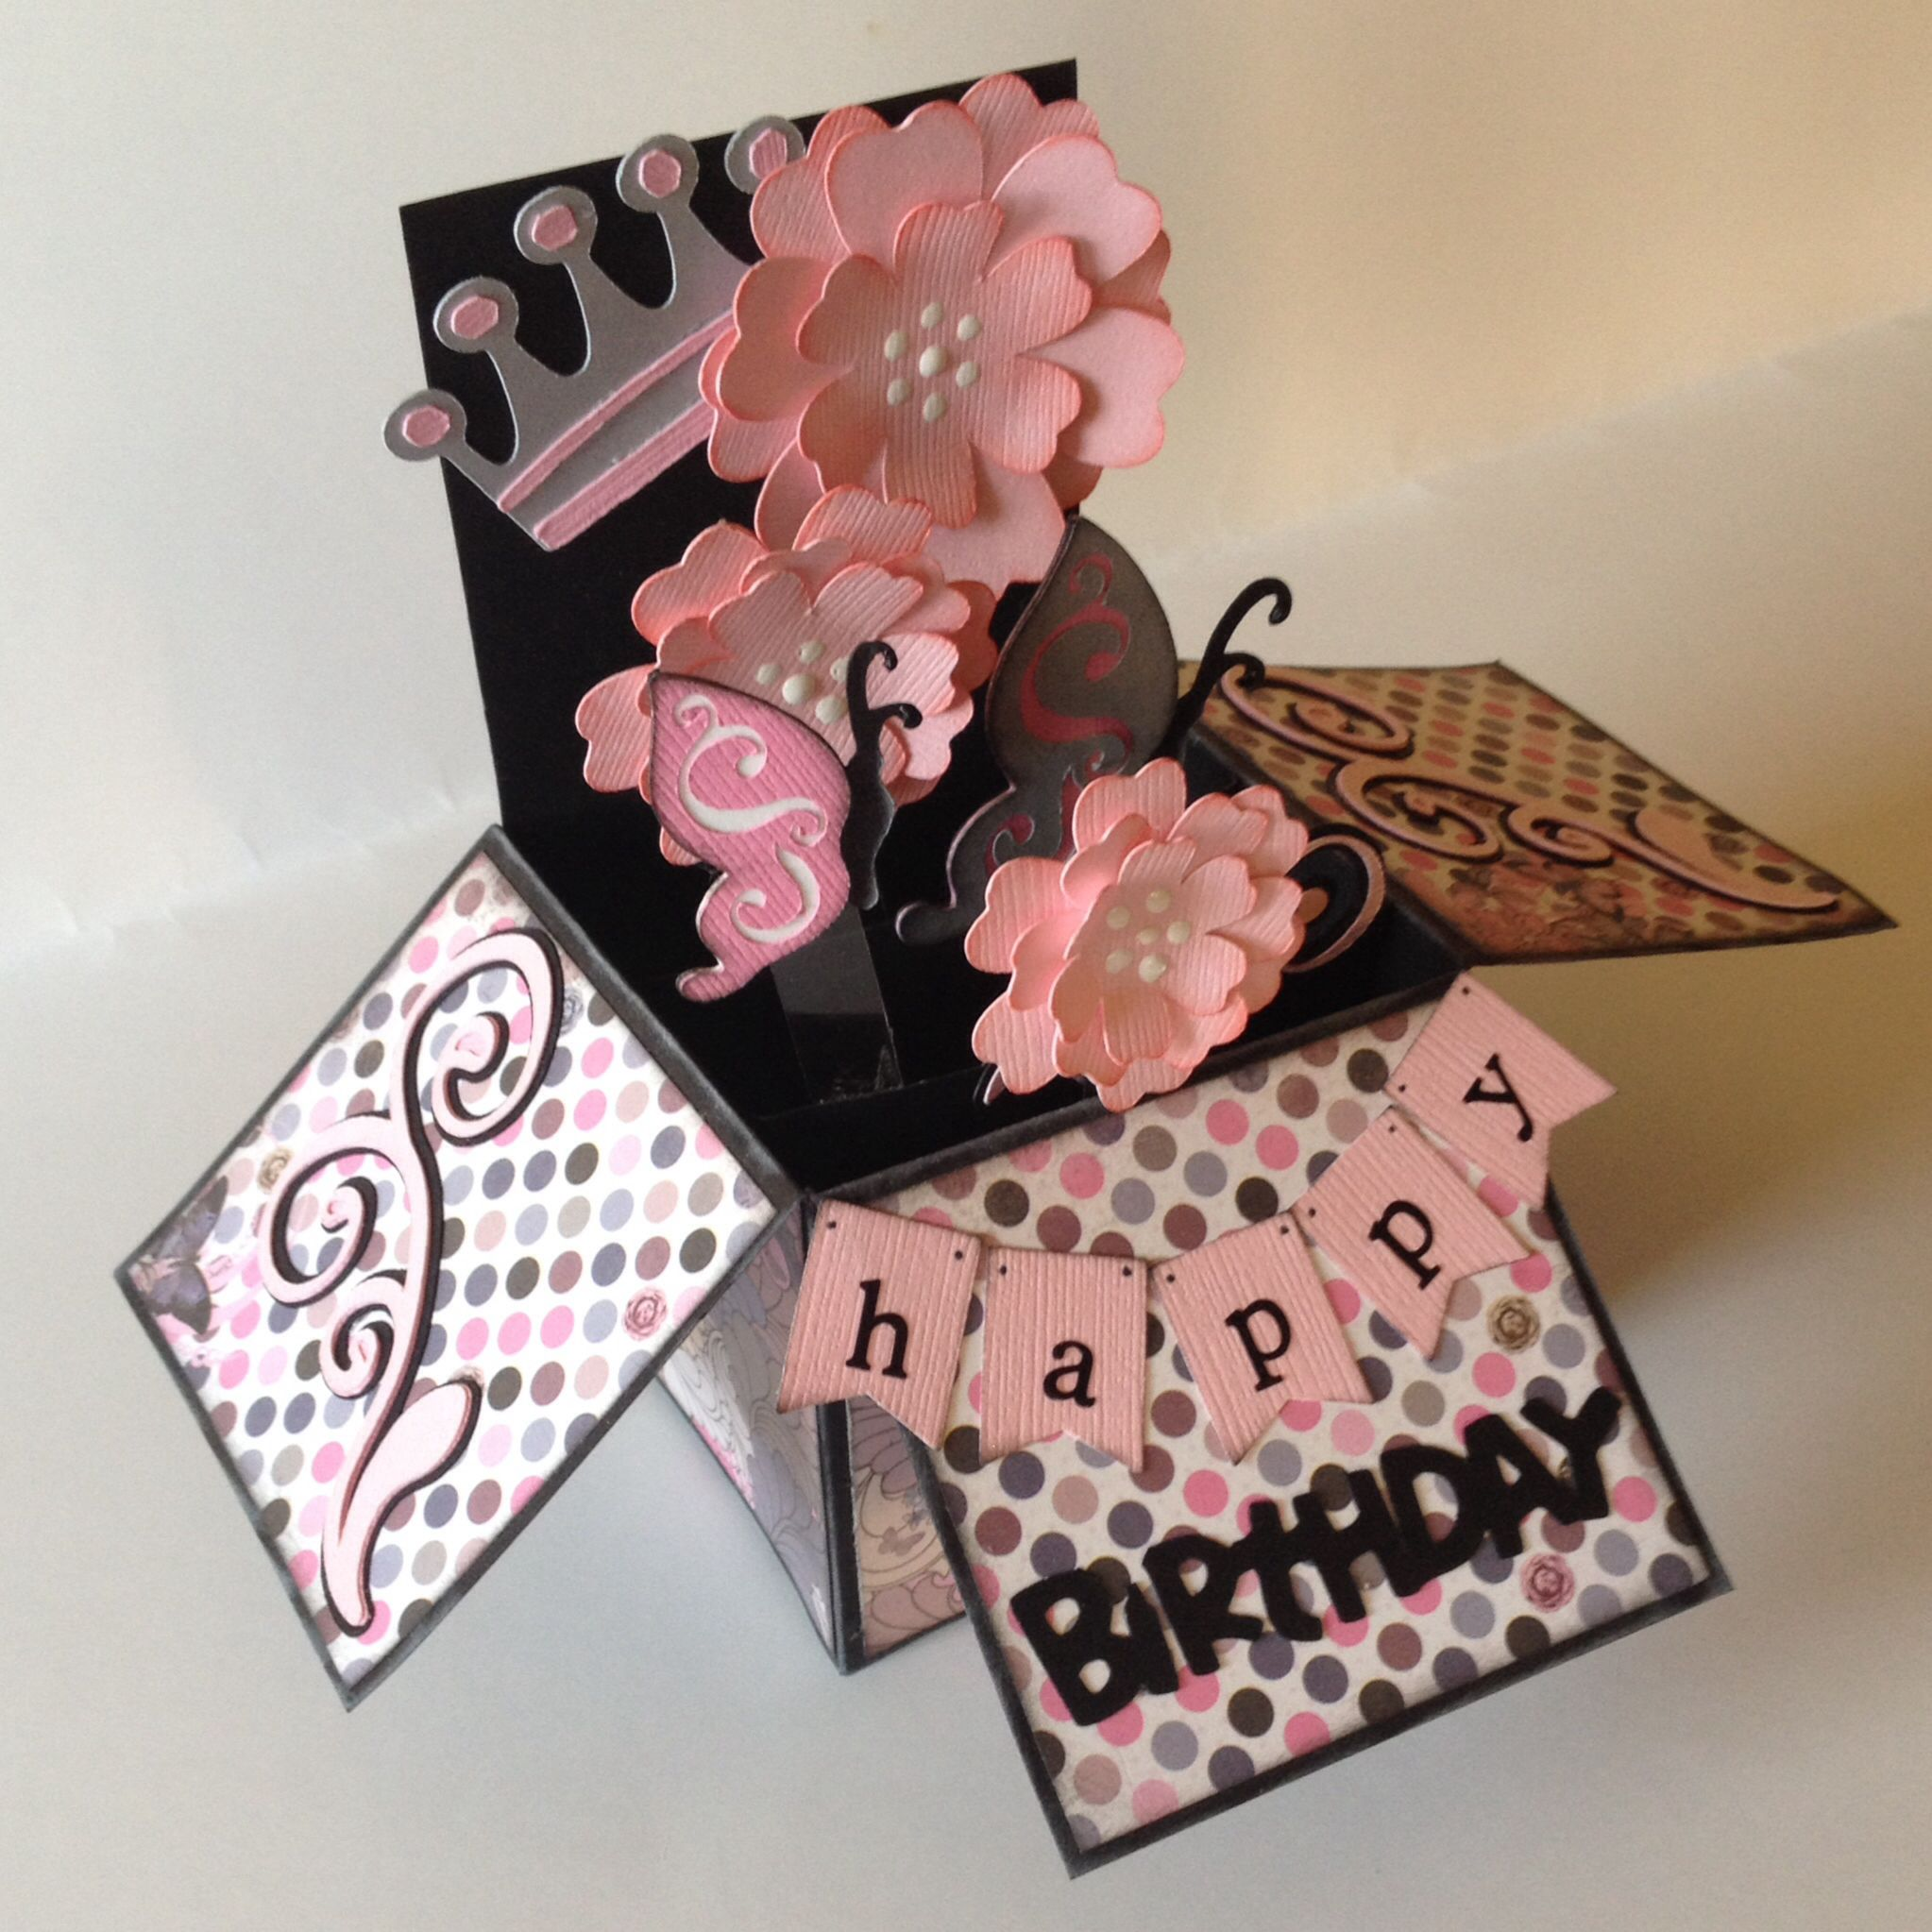 Happy birthday pop up box card  Card in a Box  Pinterest  Happy